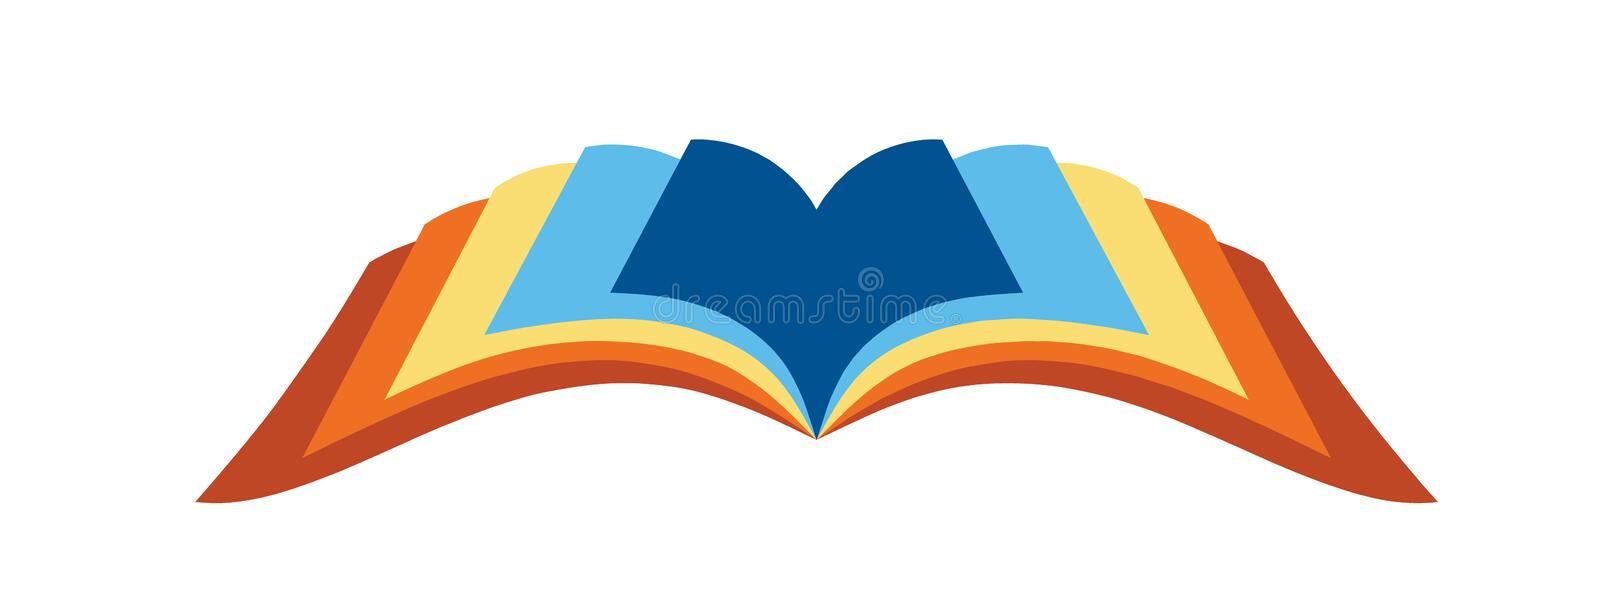 logo open book stock vector illustration of page diary 15347503 rh dreamstime com open book logo meaning open book logo vector free download